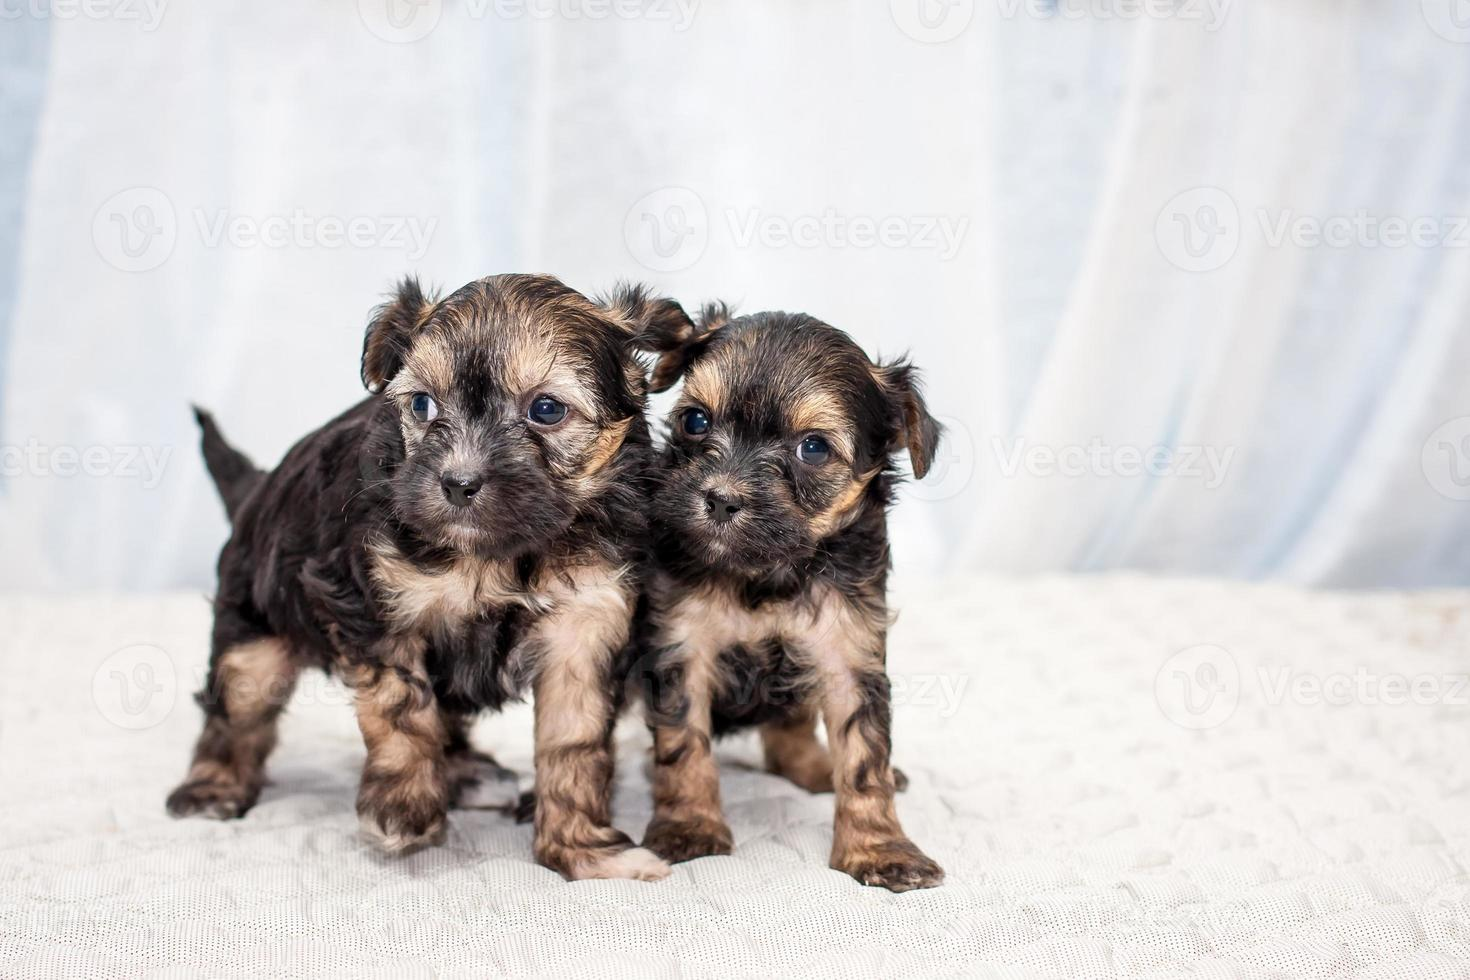 cachorros chineses foto